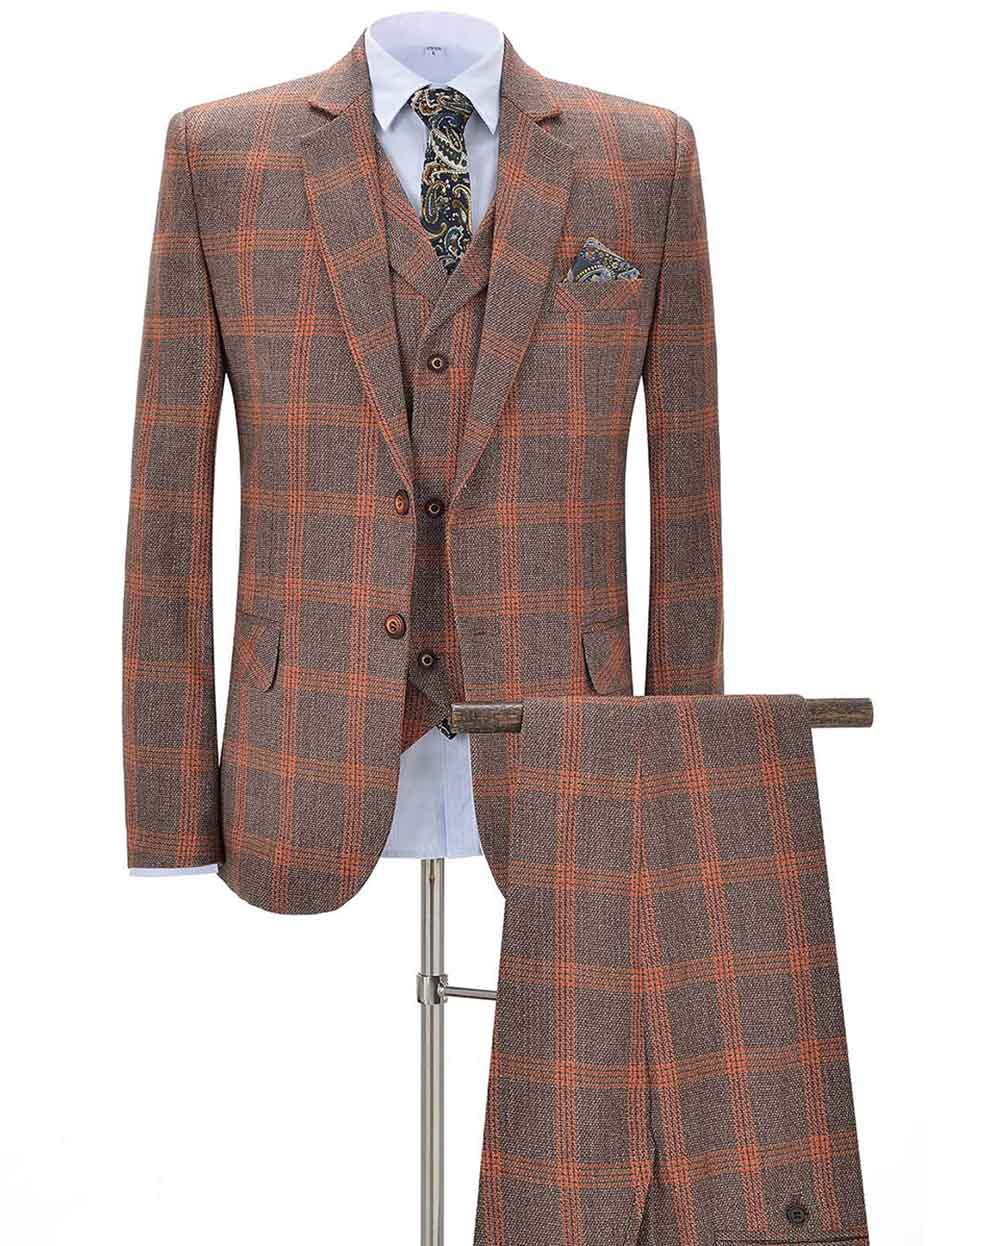 2020 New Orange Men's Plaid Suits 3 Pieces Formal Notch Lapel Business Tuxedos Groomsmen For Wedding(Blazer+vest+Pants)